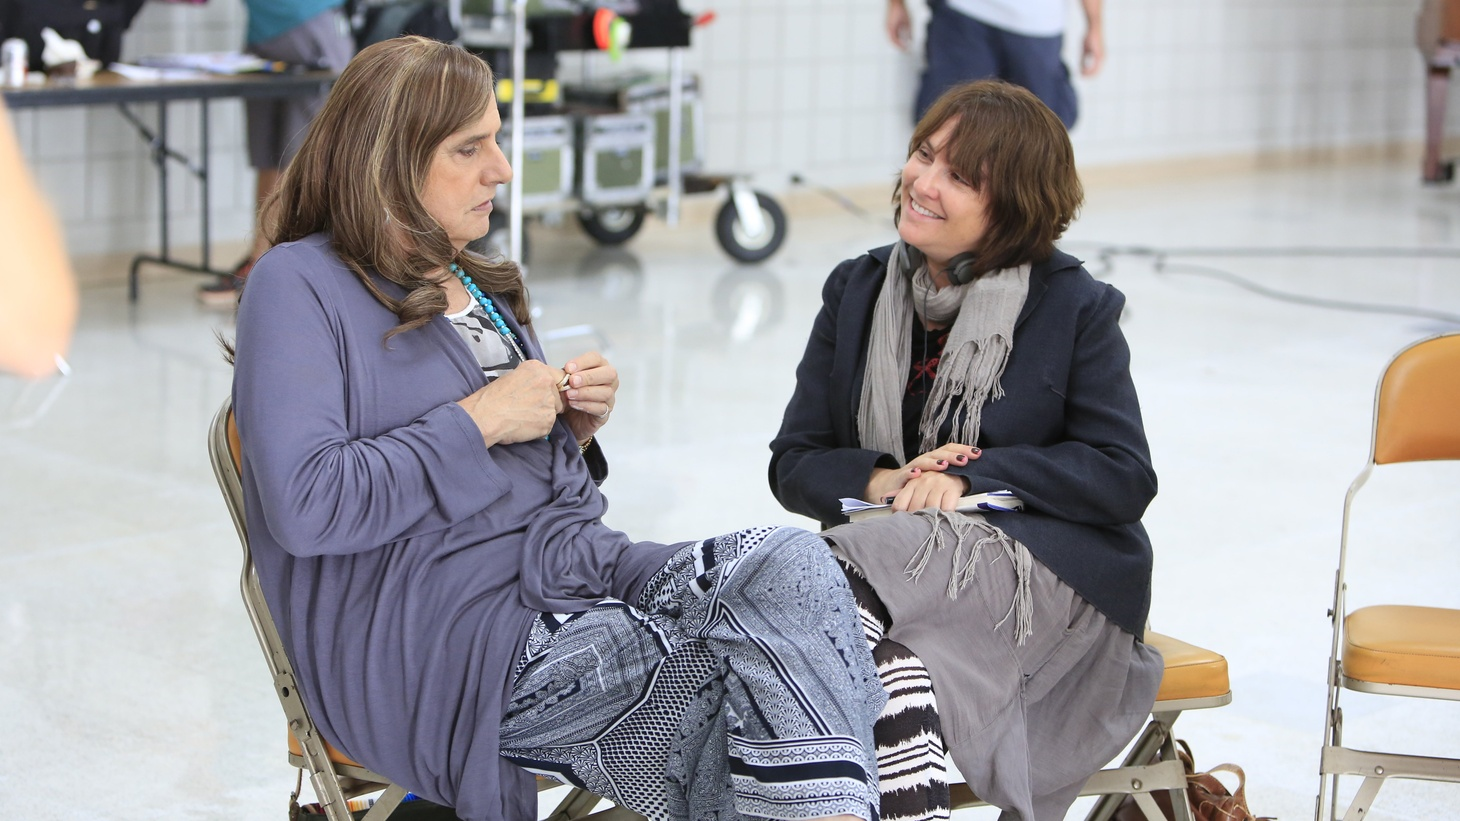 The new Amazon series Transparent depicts a loving but dysfunctional Los Angeles family. In the pilot, family patriarch announces that he's not longer going to hide his secret identity. Jill Soloway created the series. She was a writer on the HBO series Six Feet Under and she wrote and directed the feature film Afternoon Delight.